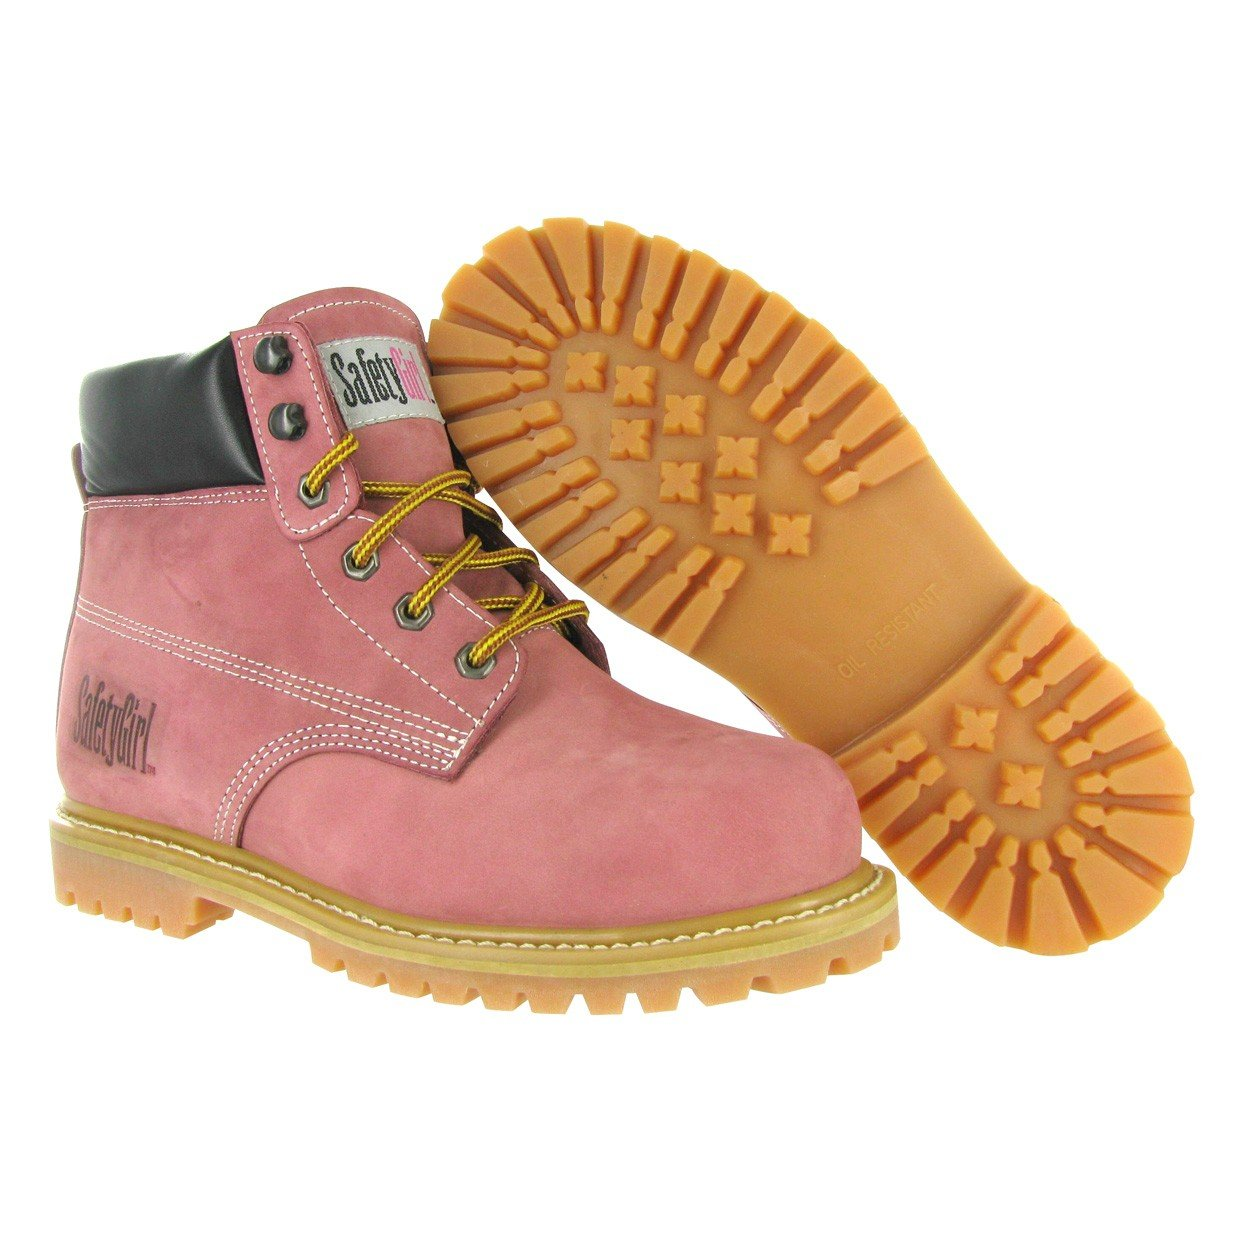 Safety Girl GS003-Lt Pink-9M Steel Toe Work Boots - Light Pink - 9M, English, Capacity, Volume, Leather, 9M, Pink () by Safety Girl (Image #2)